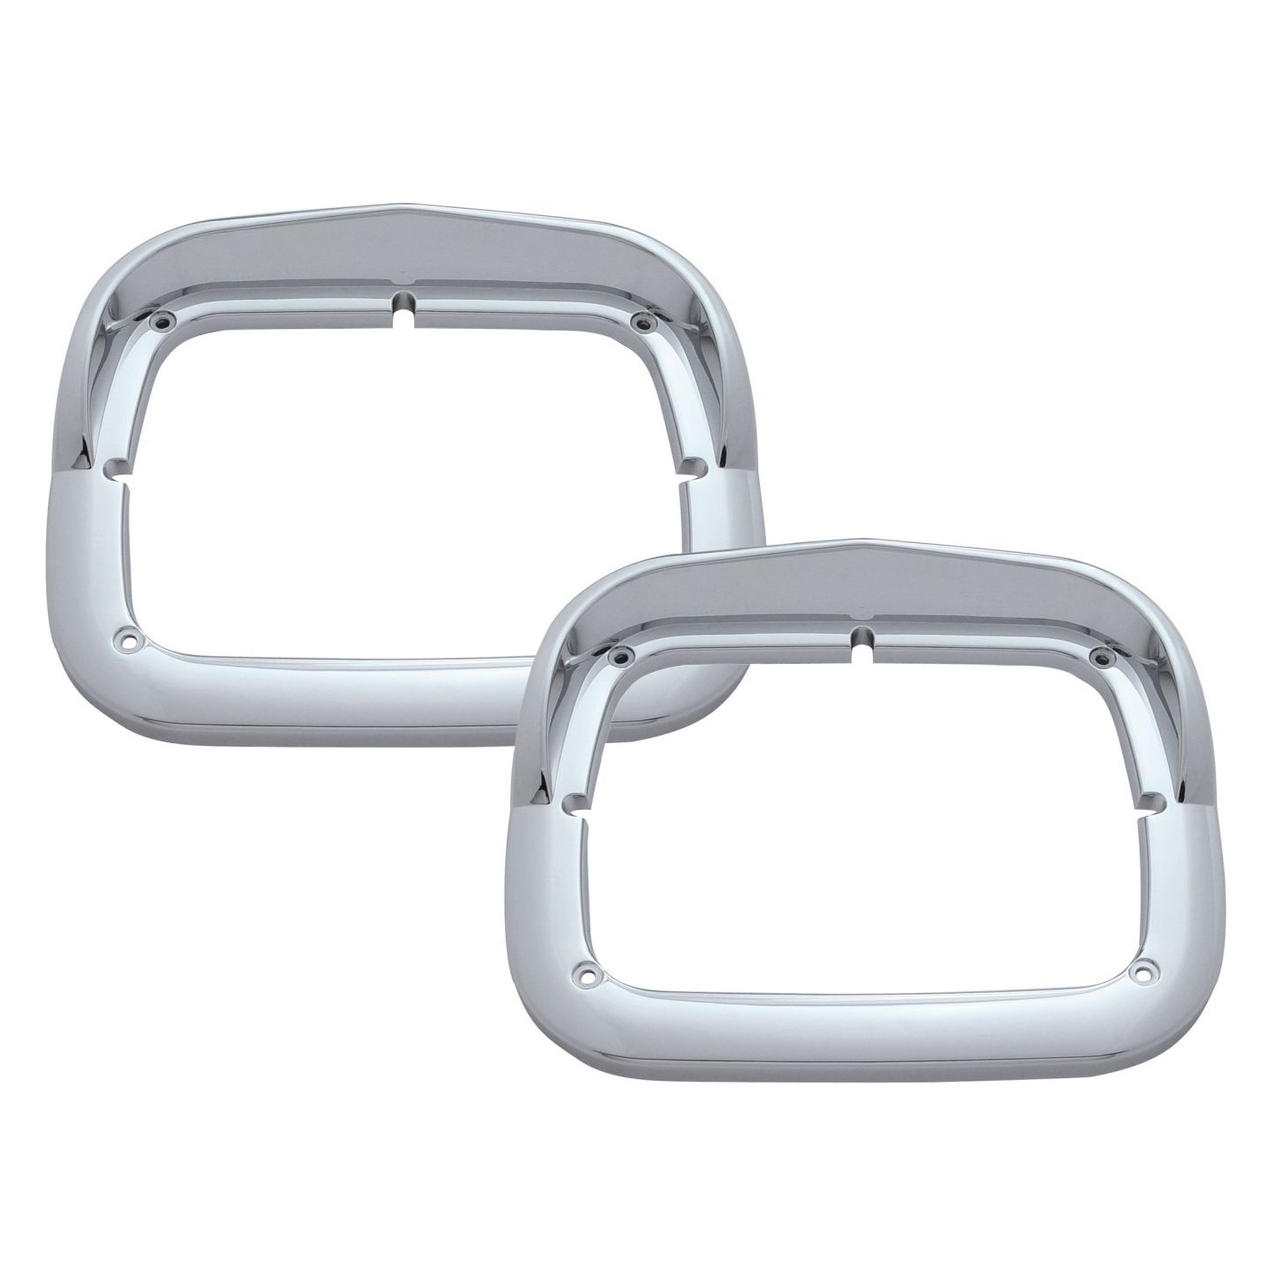 Chrome Plastic Headlight Bezels 6X8 single head light with visor for Peterbilt, Kenworth, Pair